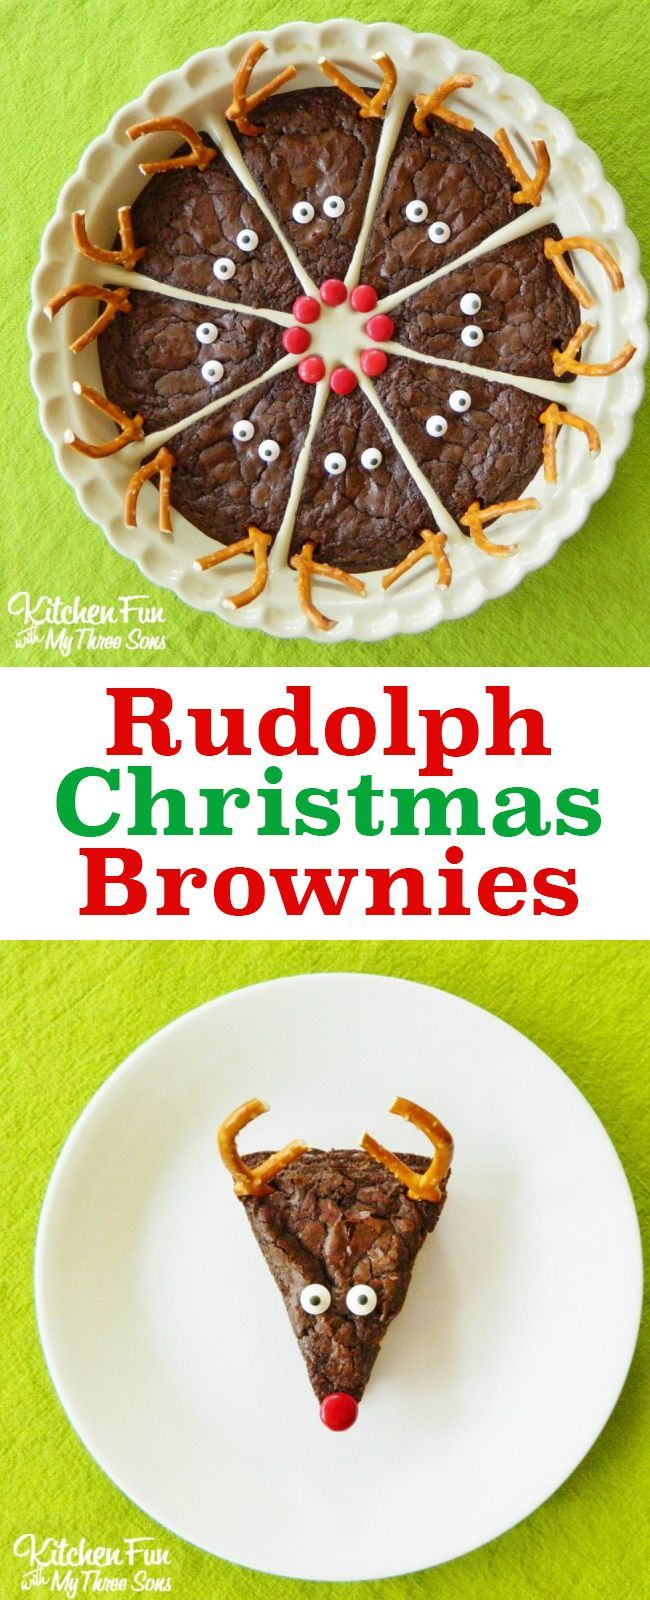 cool So cute! Love these easy Rudolph the Red Nose Reindeer Brownies. A perfect Chris...